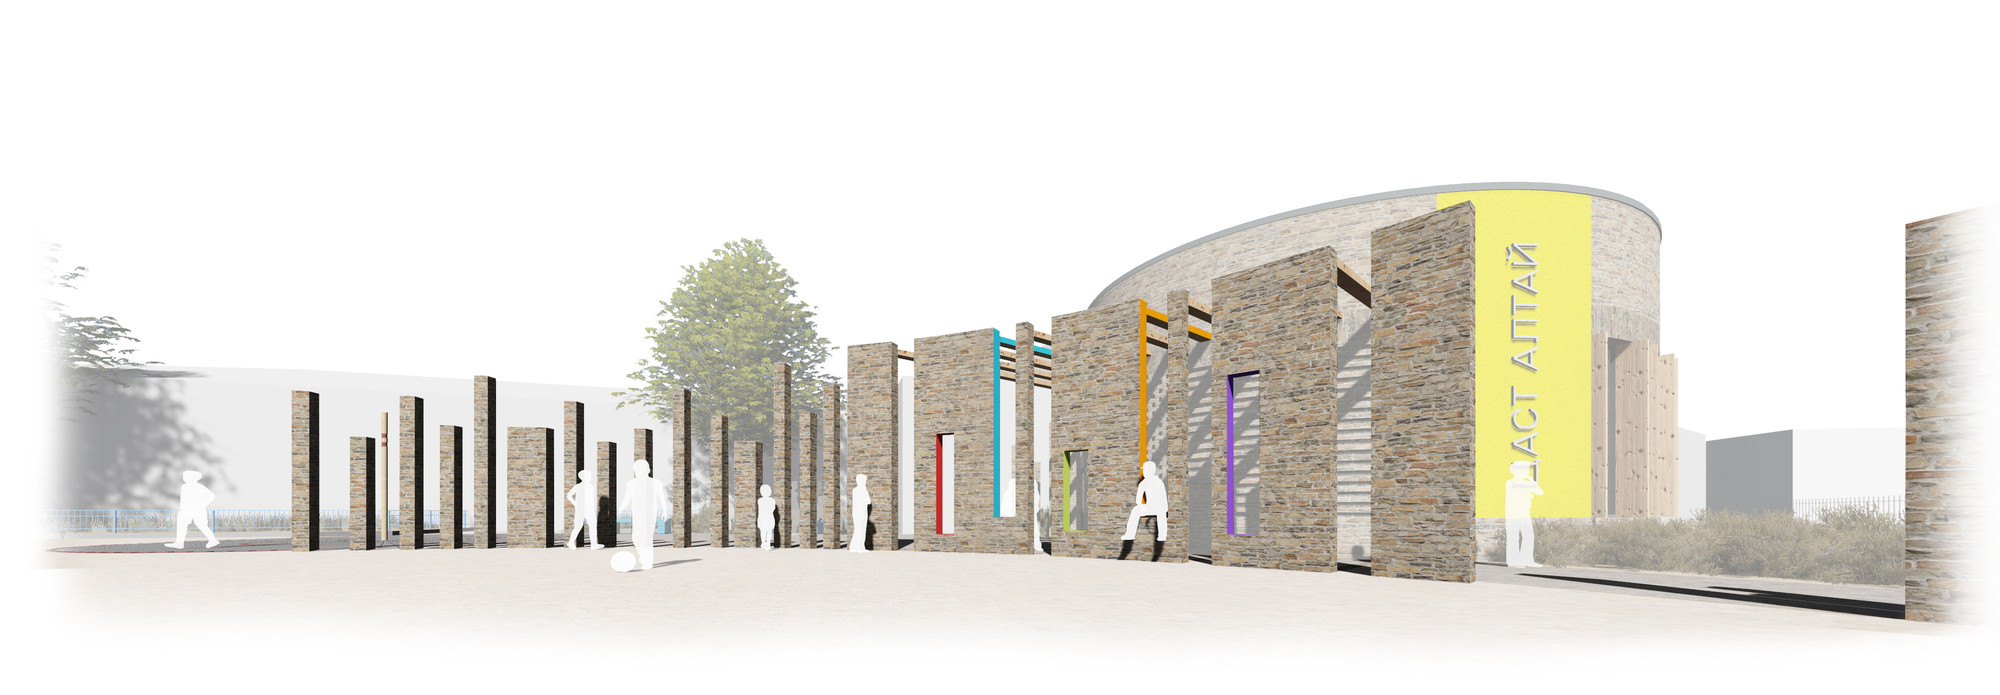 Place by design wins cool school design competition for House design competition